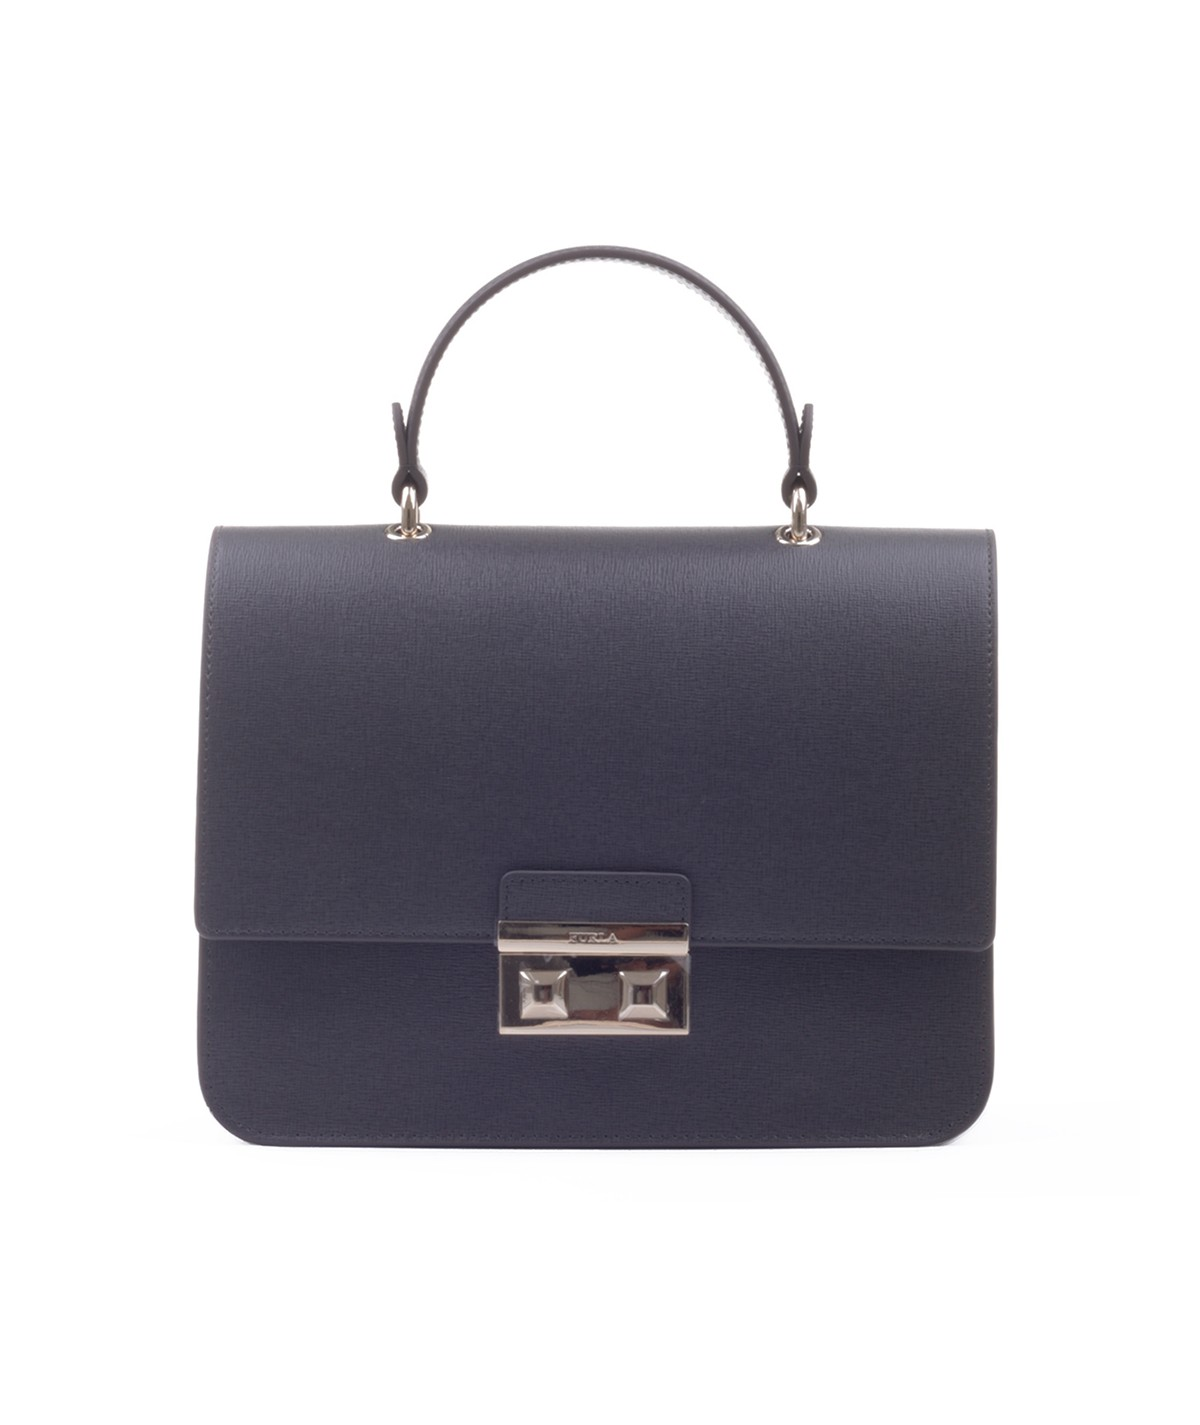 FURLA Borsa Donna Top Handle